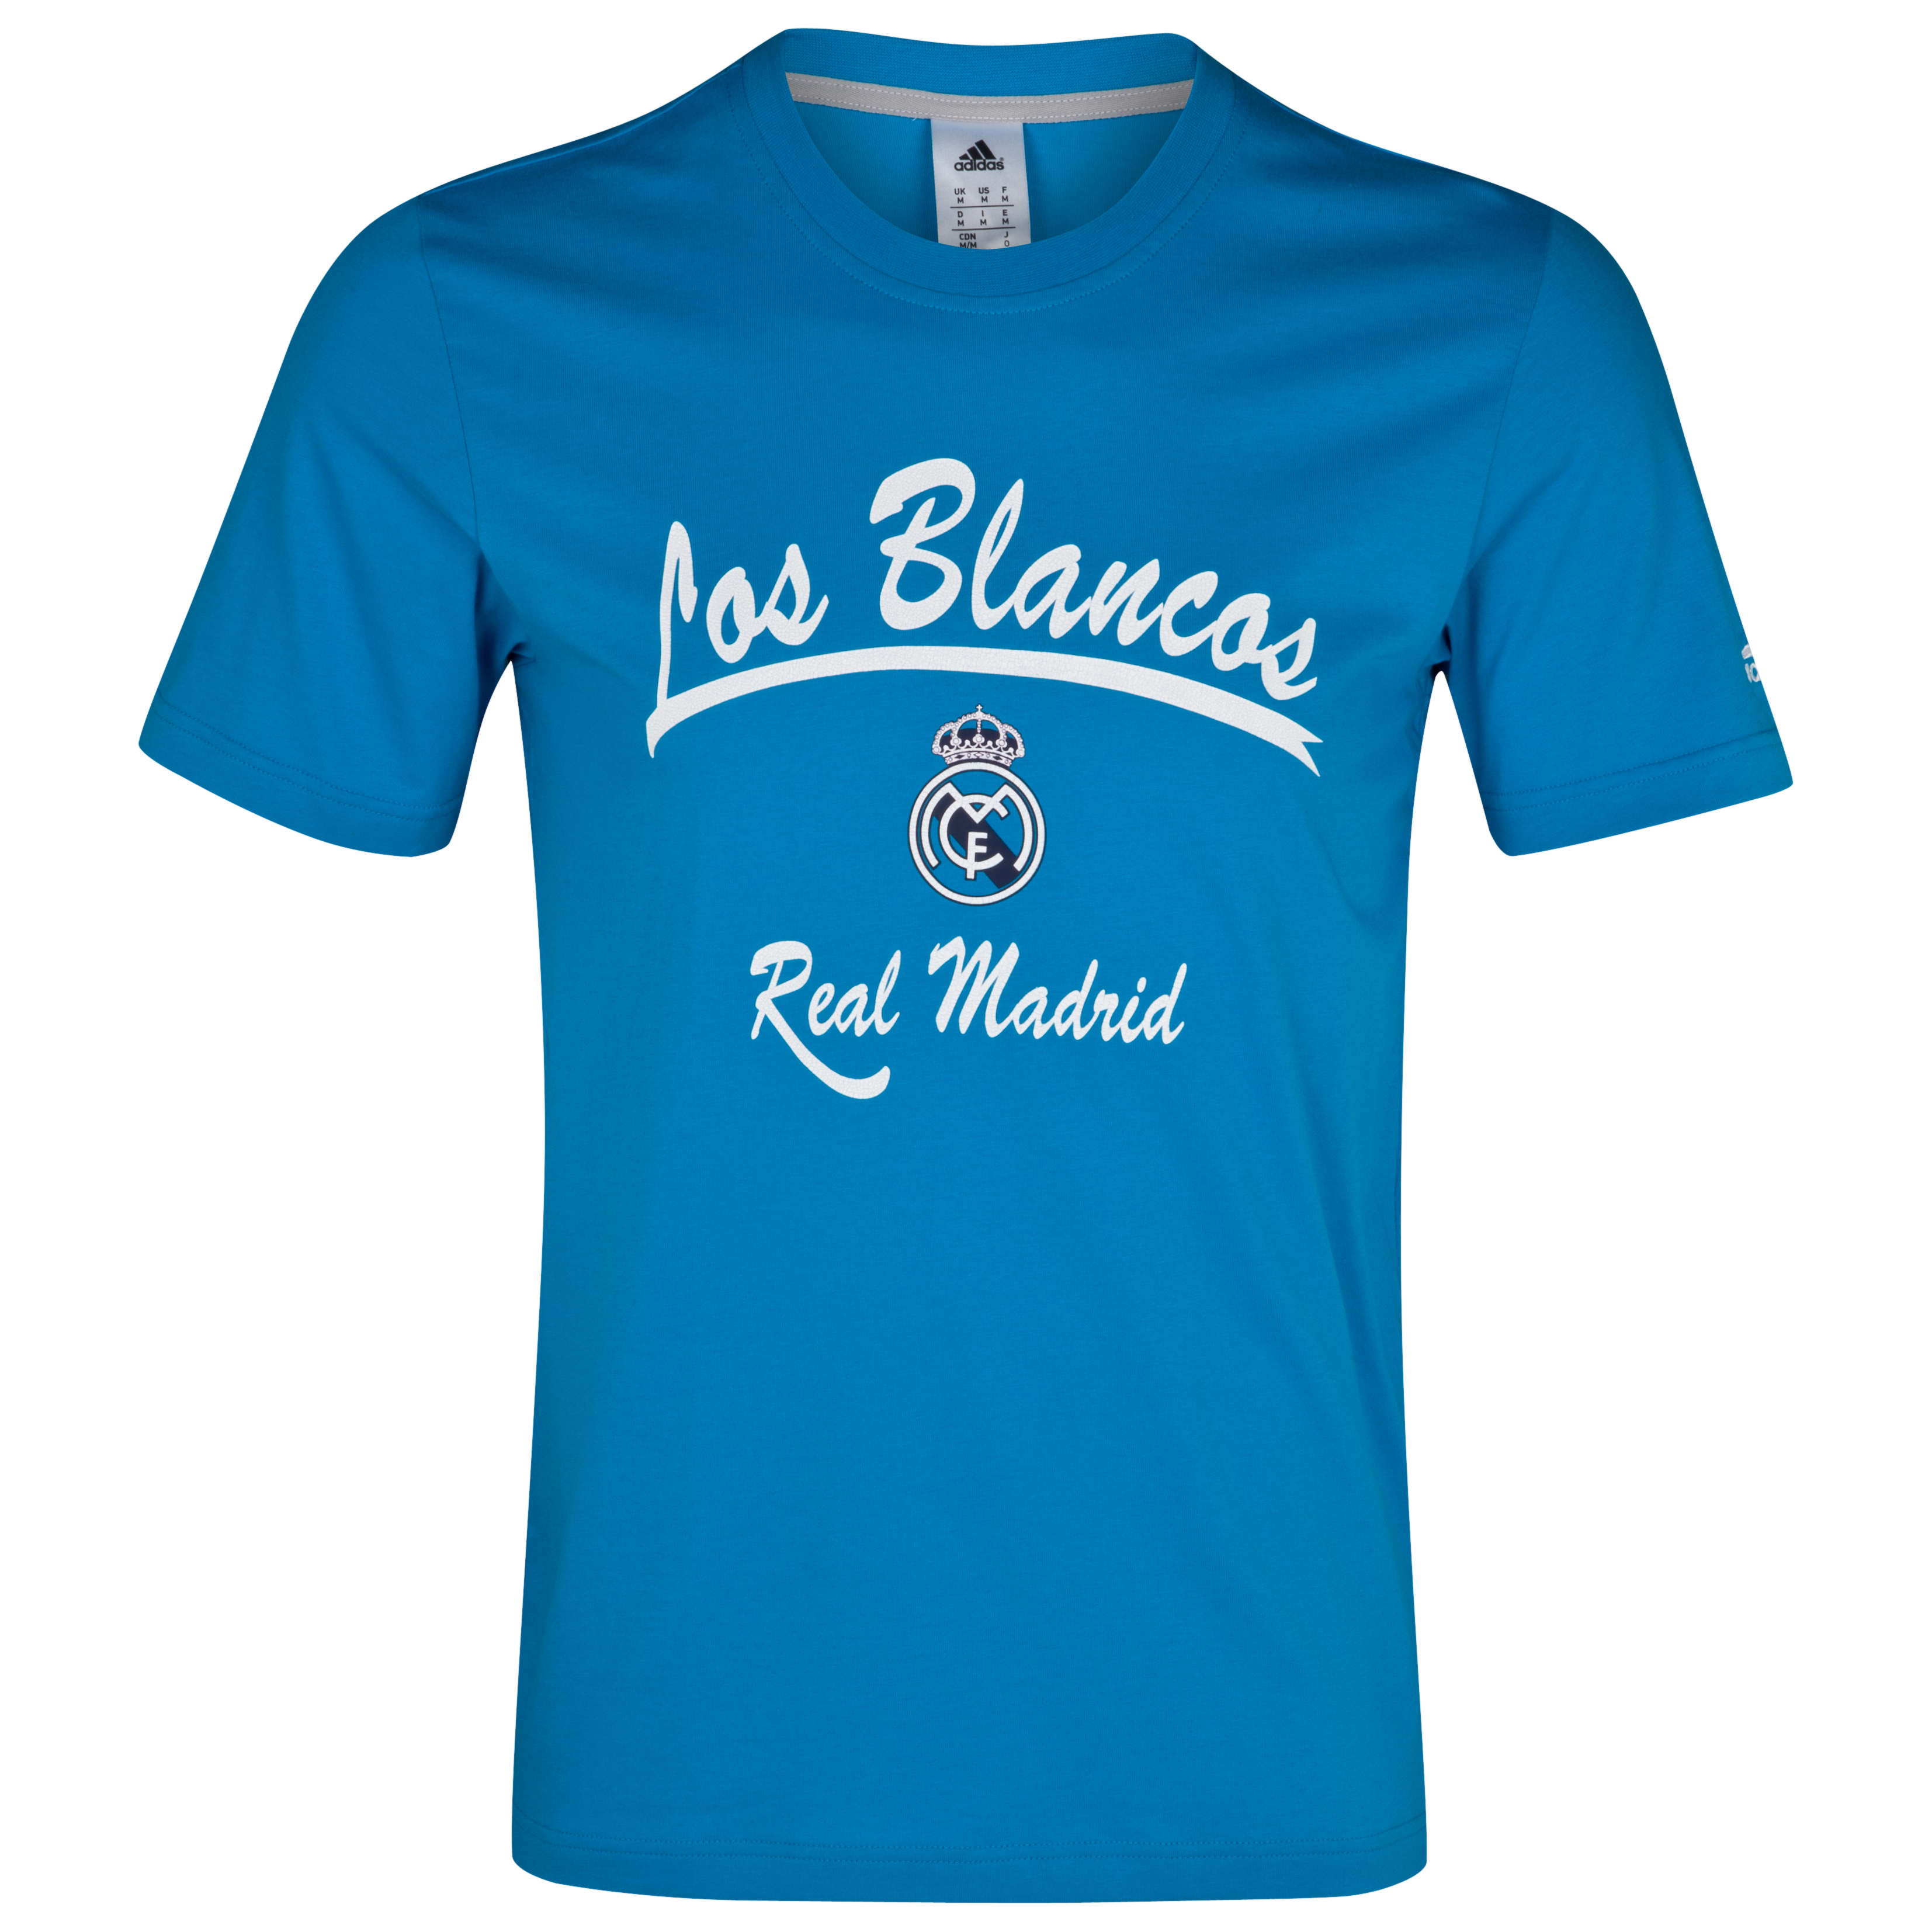 Real Madrid Graphic T-Shirt - Turquoise/White